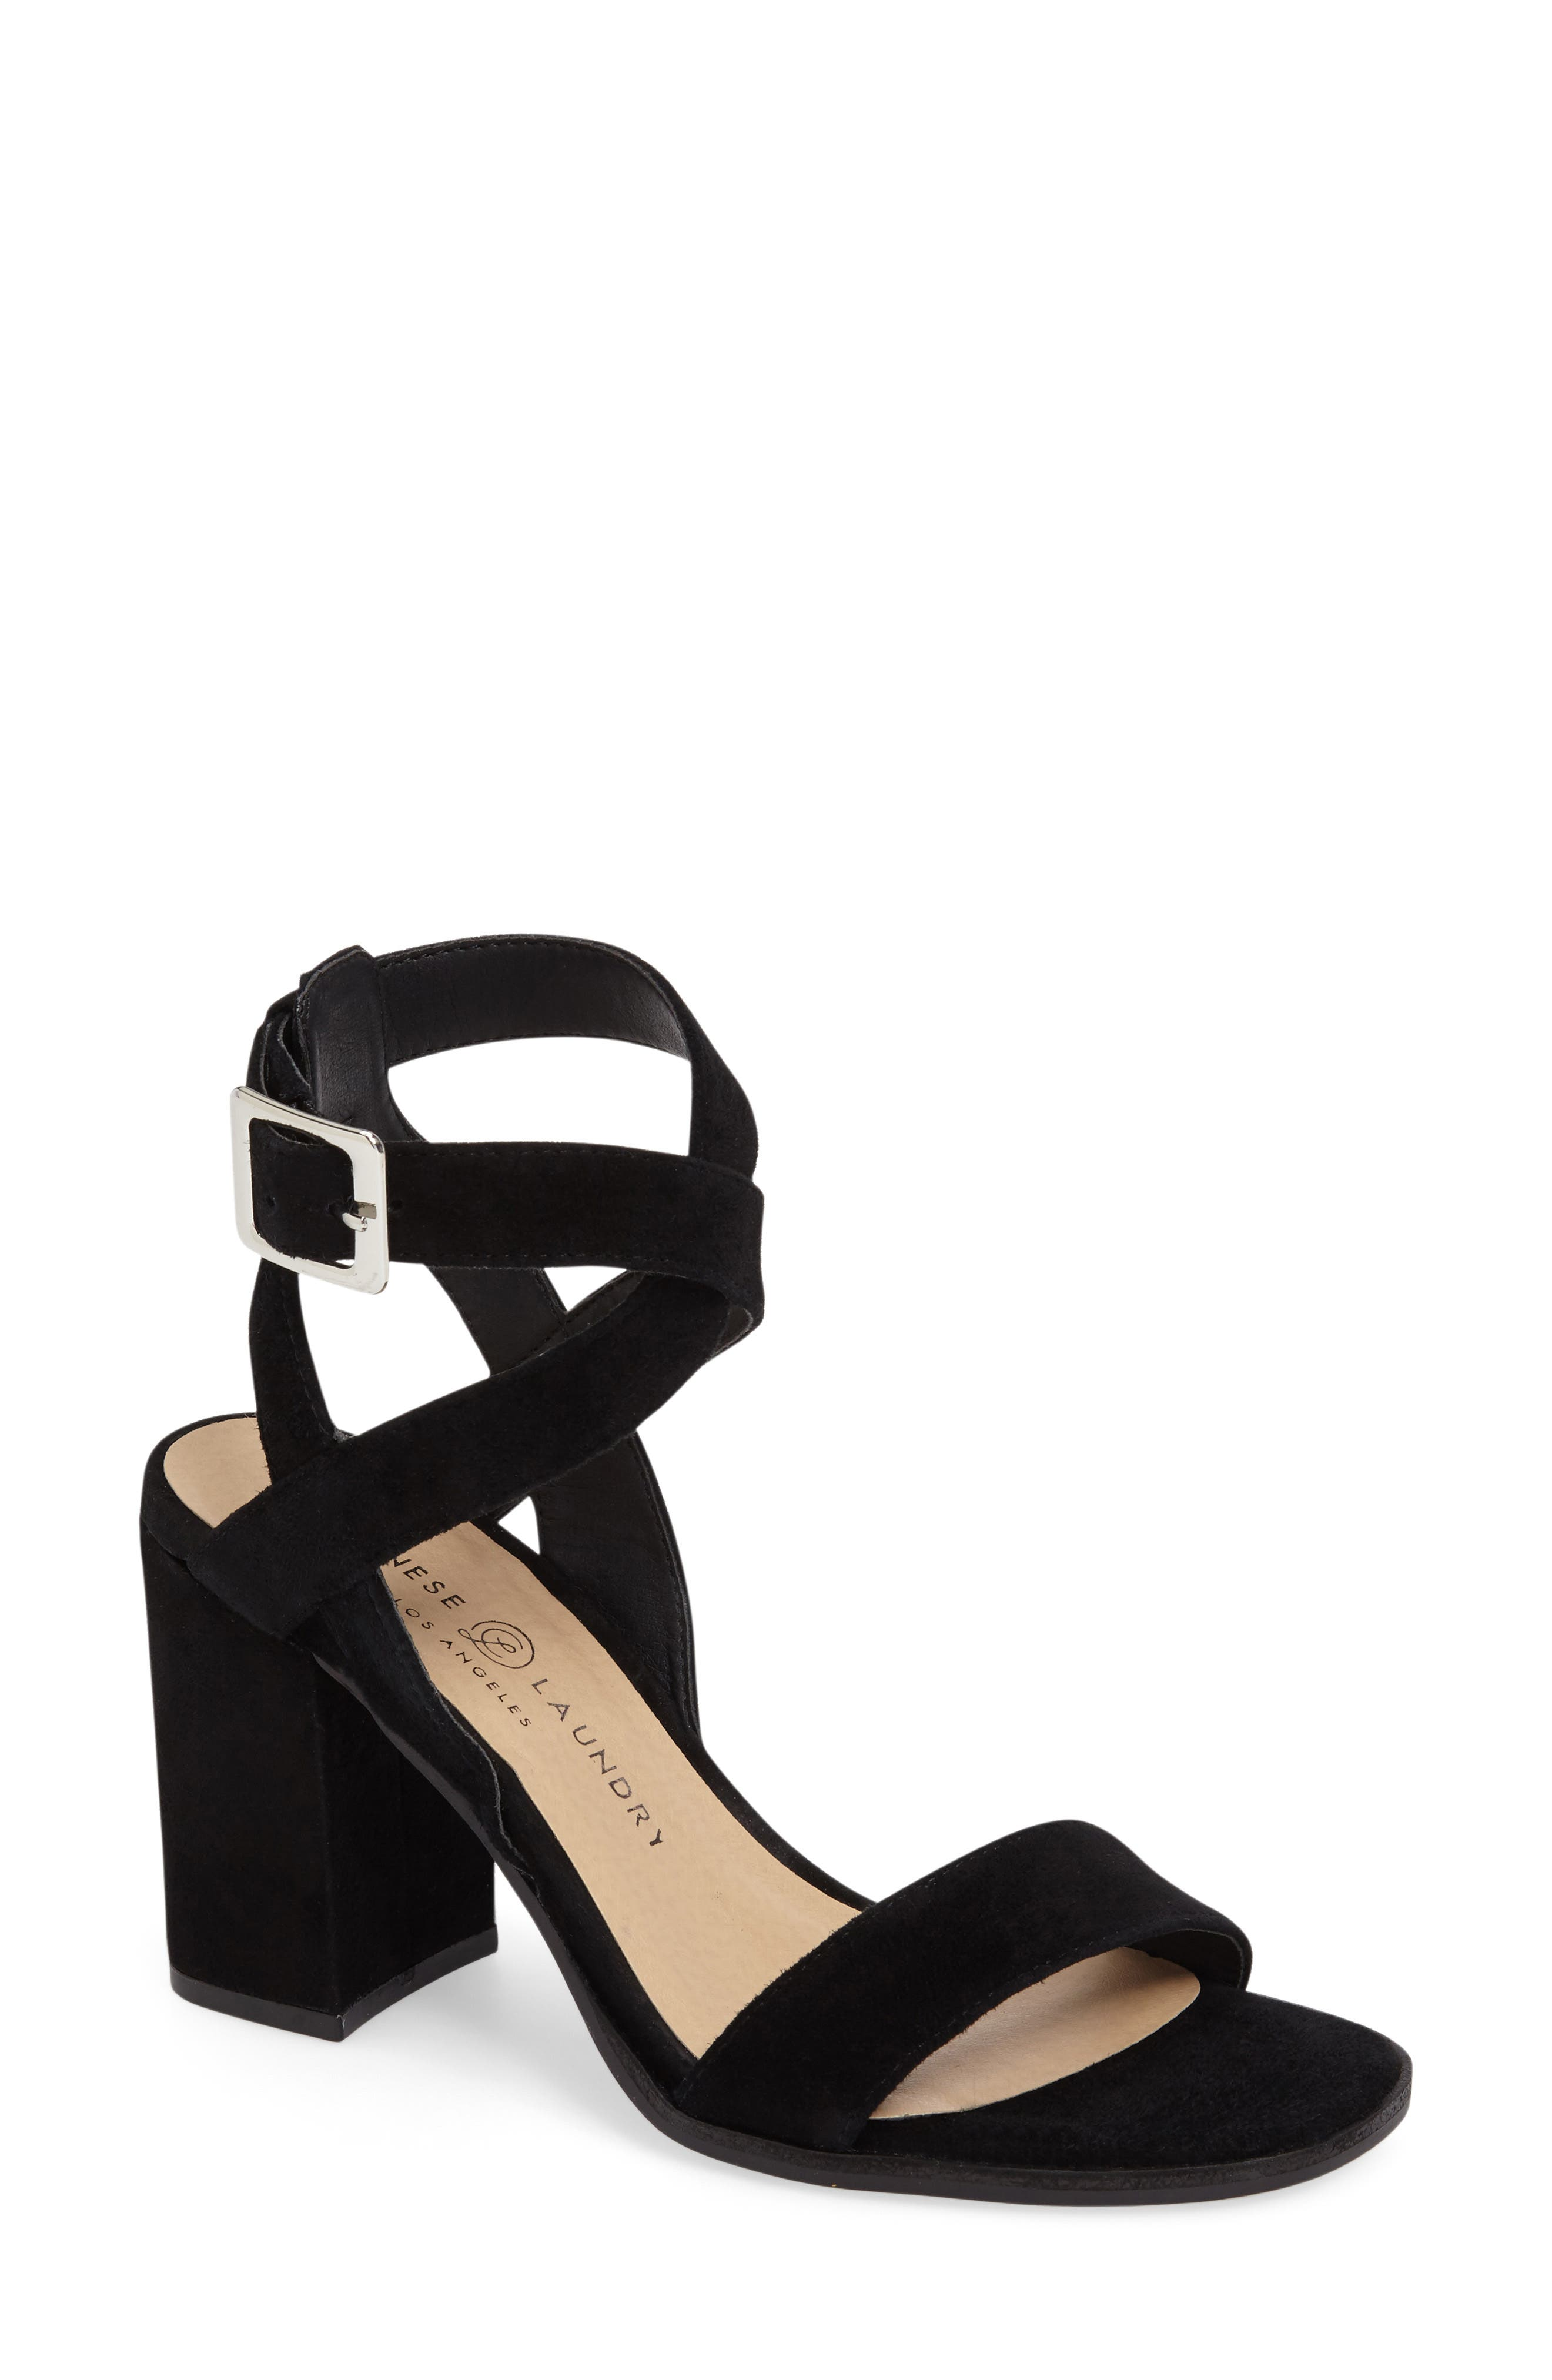 Sitara Ankle Strap Sandal,                             Main thumbnail 1, color,                             001